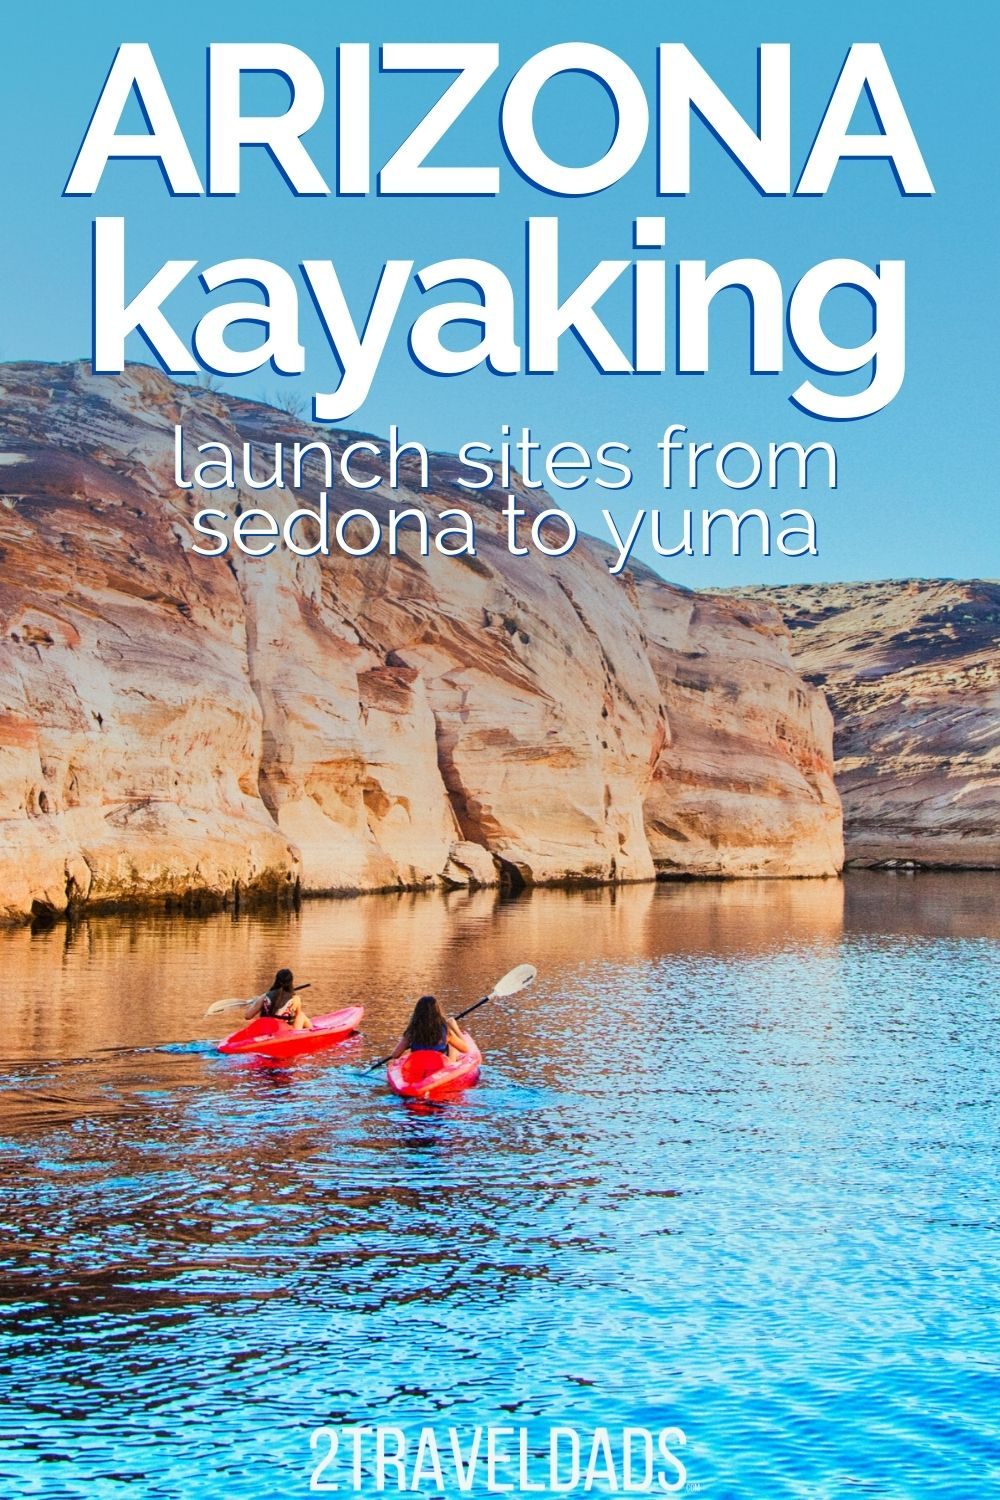 These are the best places to kayak in Arizona. From Page and Grand Canyon territory to kayaking and SUP near Phoenix, launch sites to explore Arizona's National Parks and beyond.